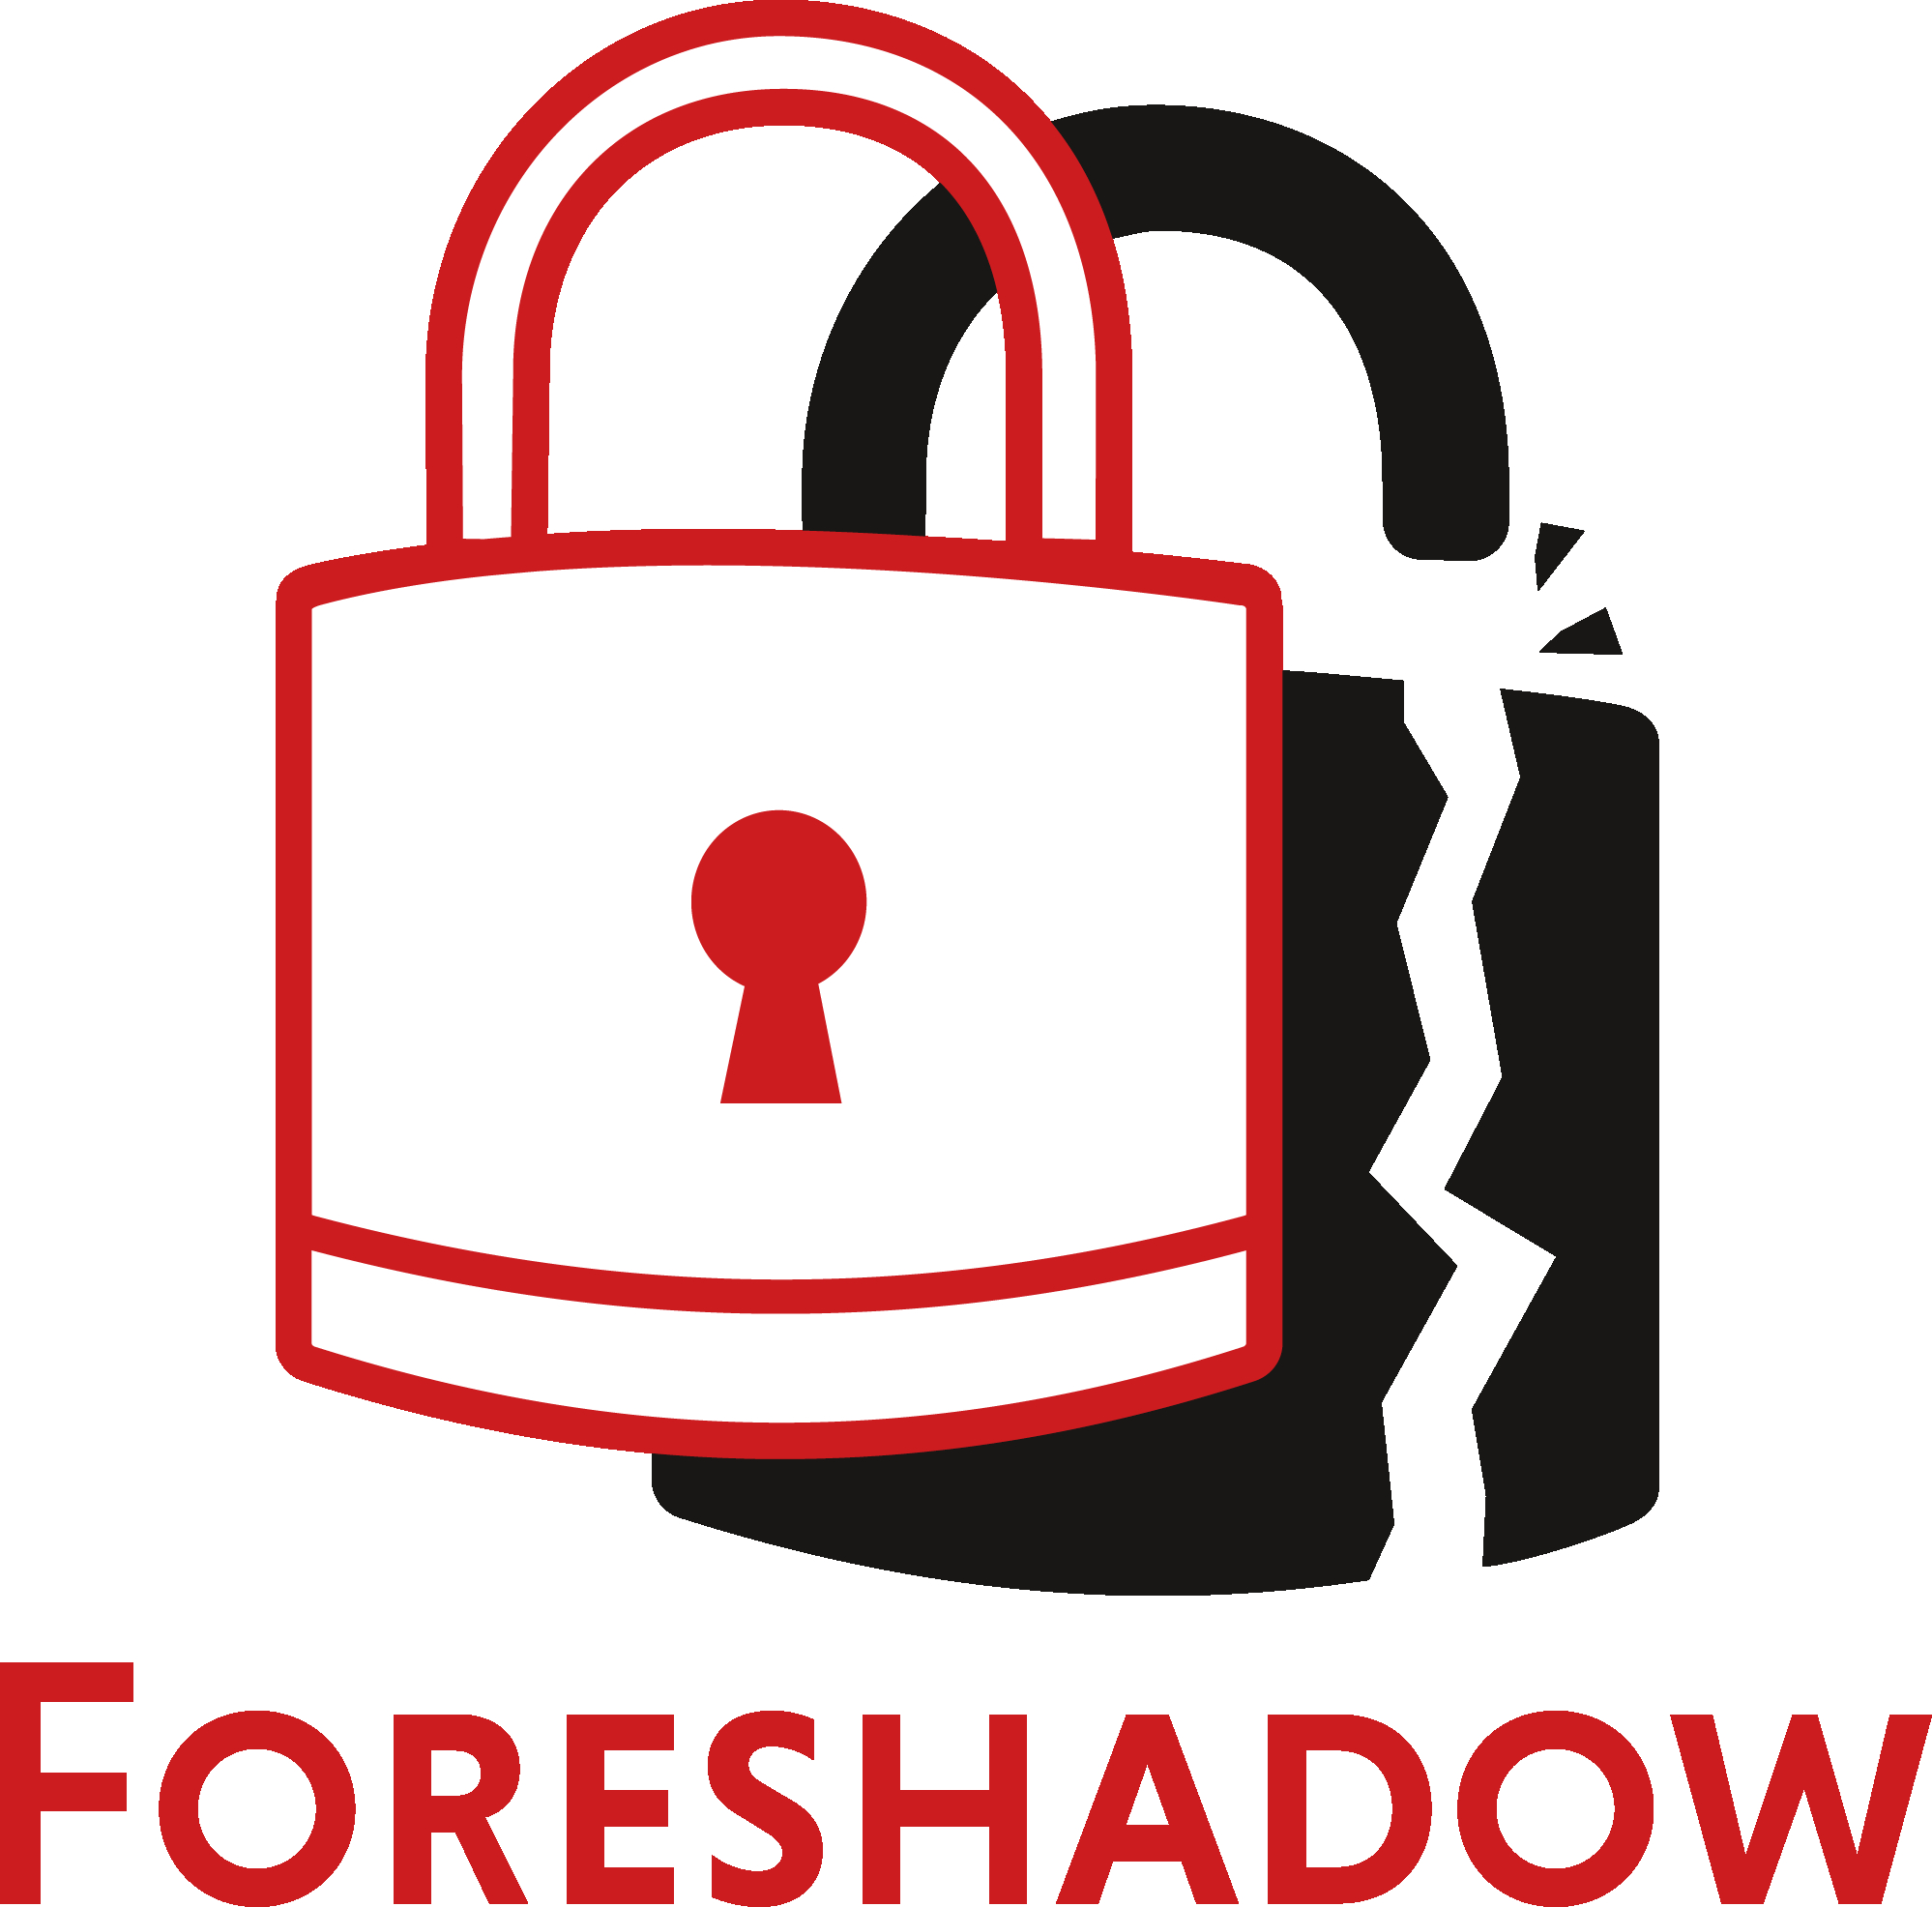 A fruity voice talks about pig-iron? Foreshadow makes all your secrets belong to us!